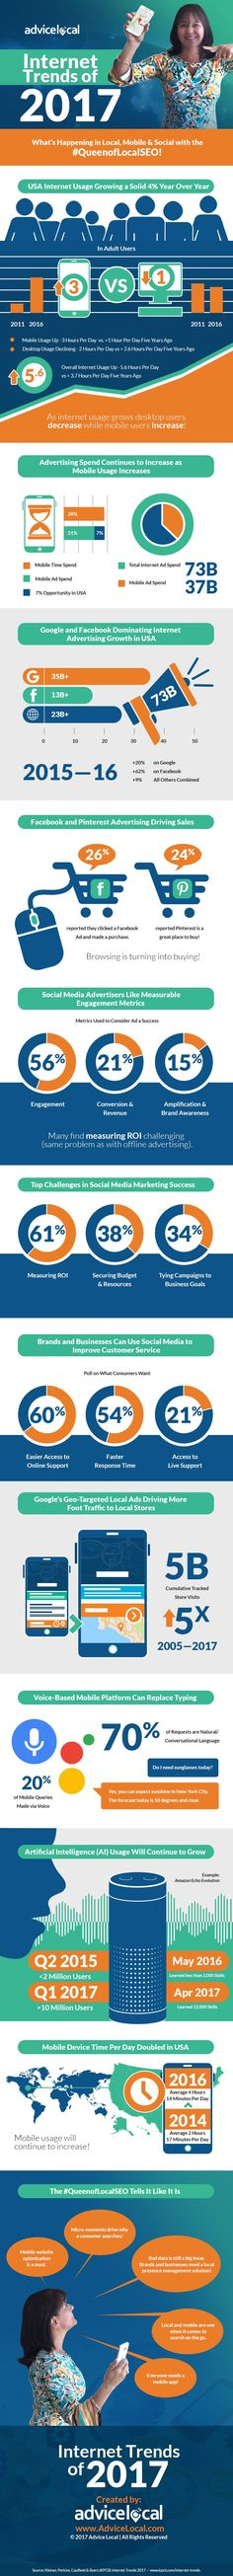 KPCB has released their 2017 Internet Trends Report and Advice Local dissected the slide deck down to these top trends. Check out our infographic. Online Marketing Companies, Online Advertising, Content Marketing, Digital Marketing, Cyber Security Awareness, Internet Trends, Brand Management, Marketing Communications, Digital Trends